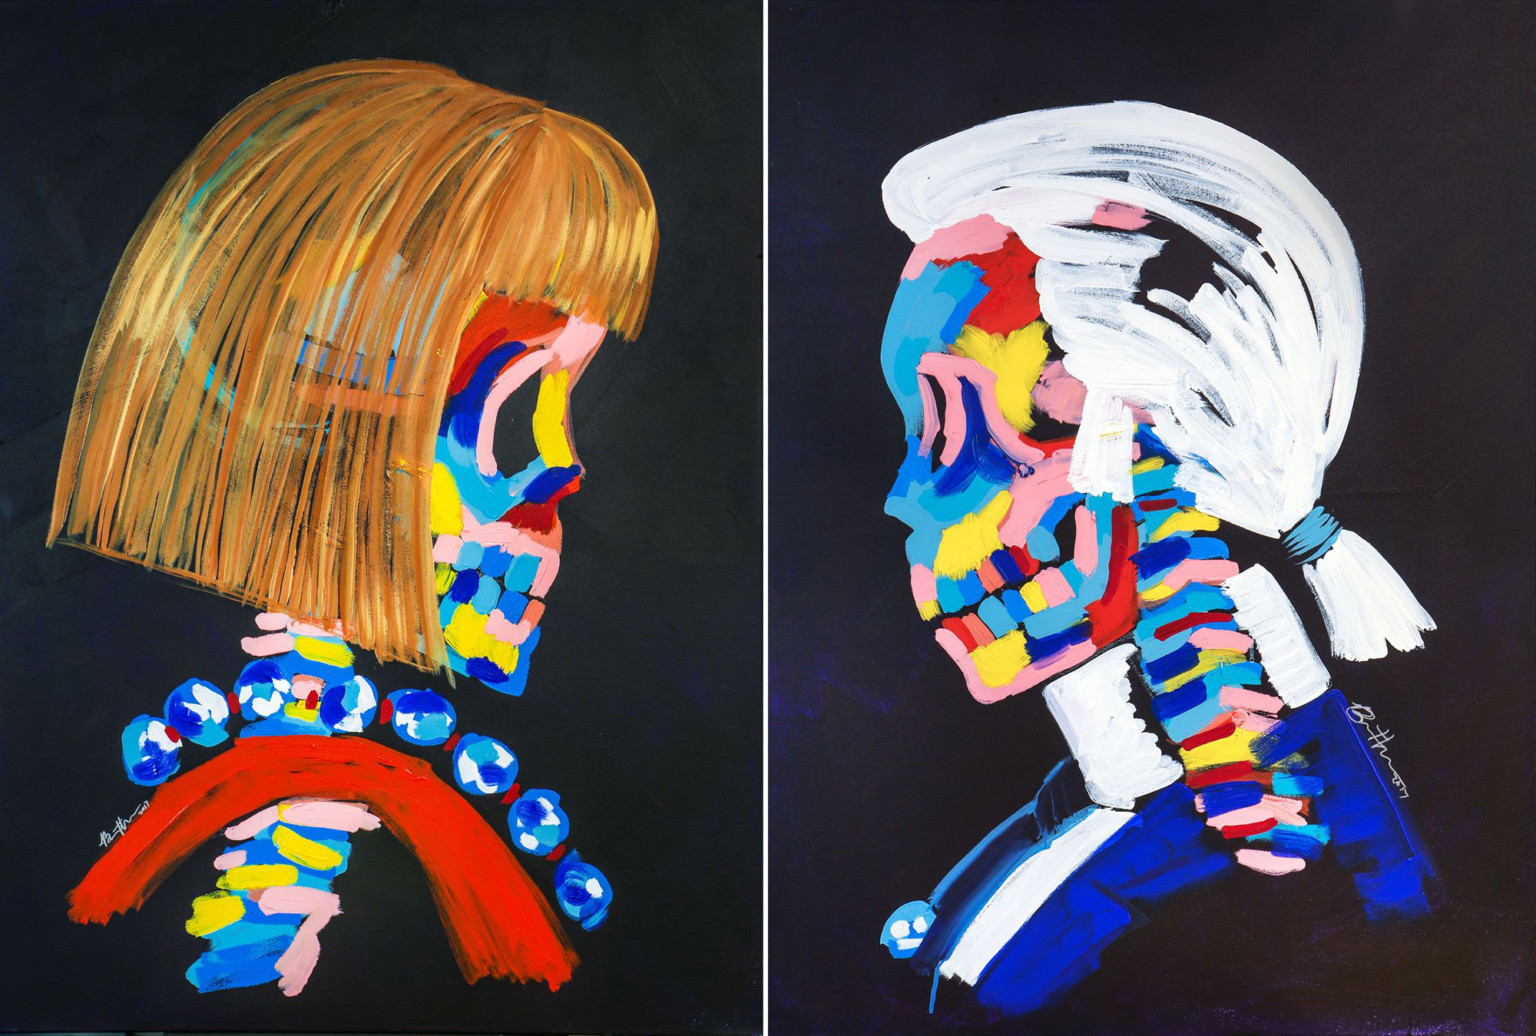 Skeletons of Pop Culture Icons through Colorful Paintings